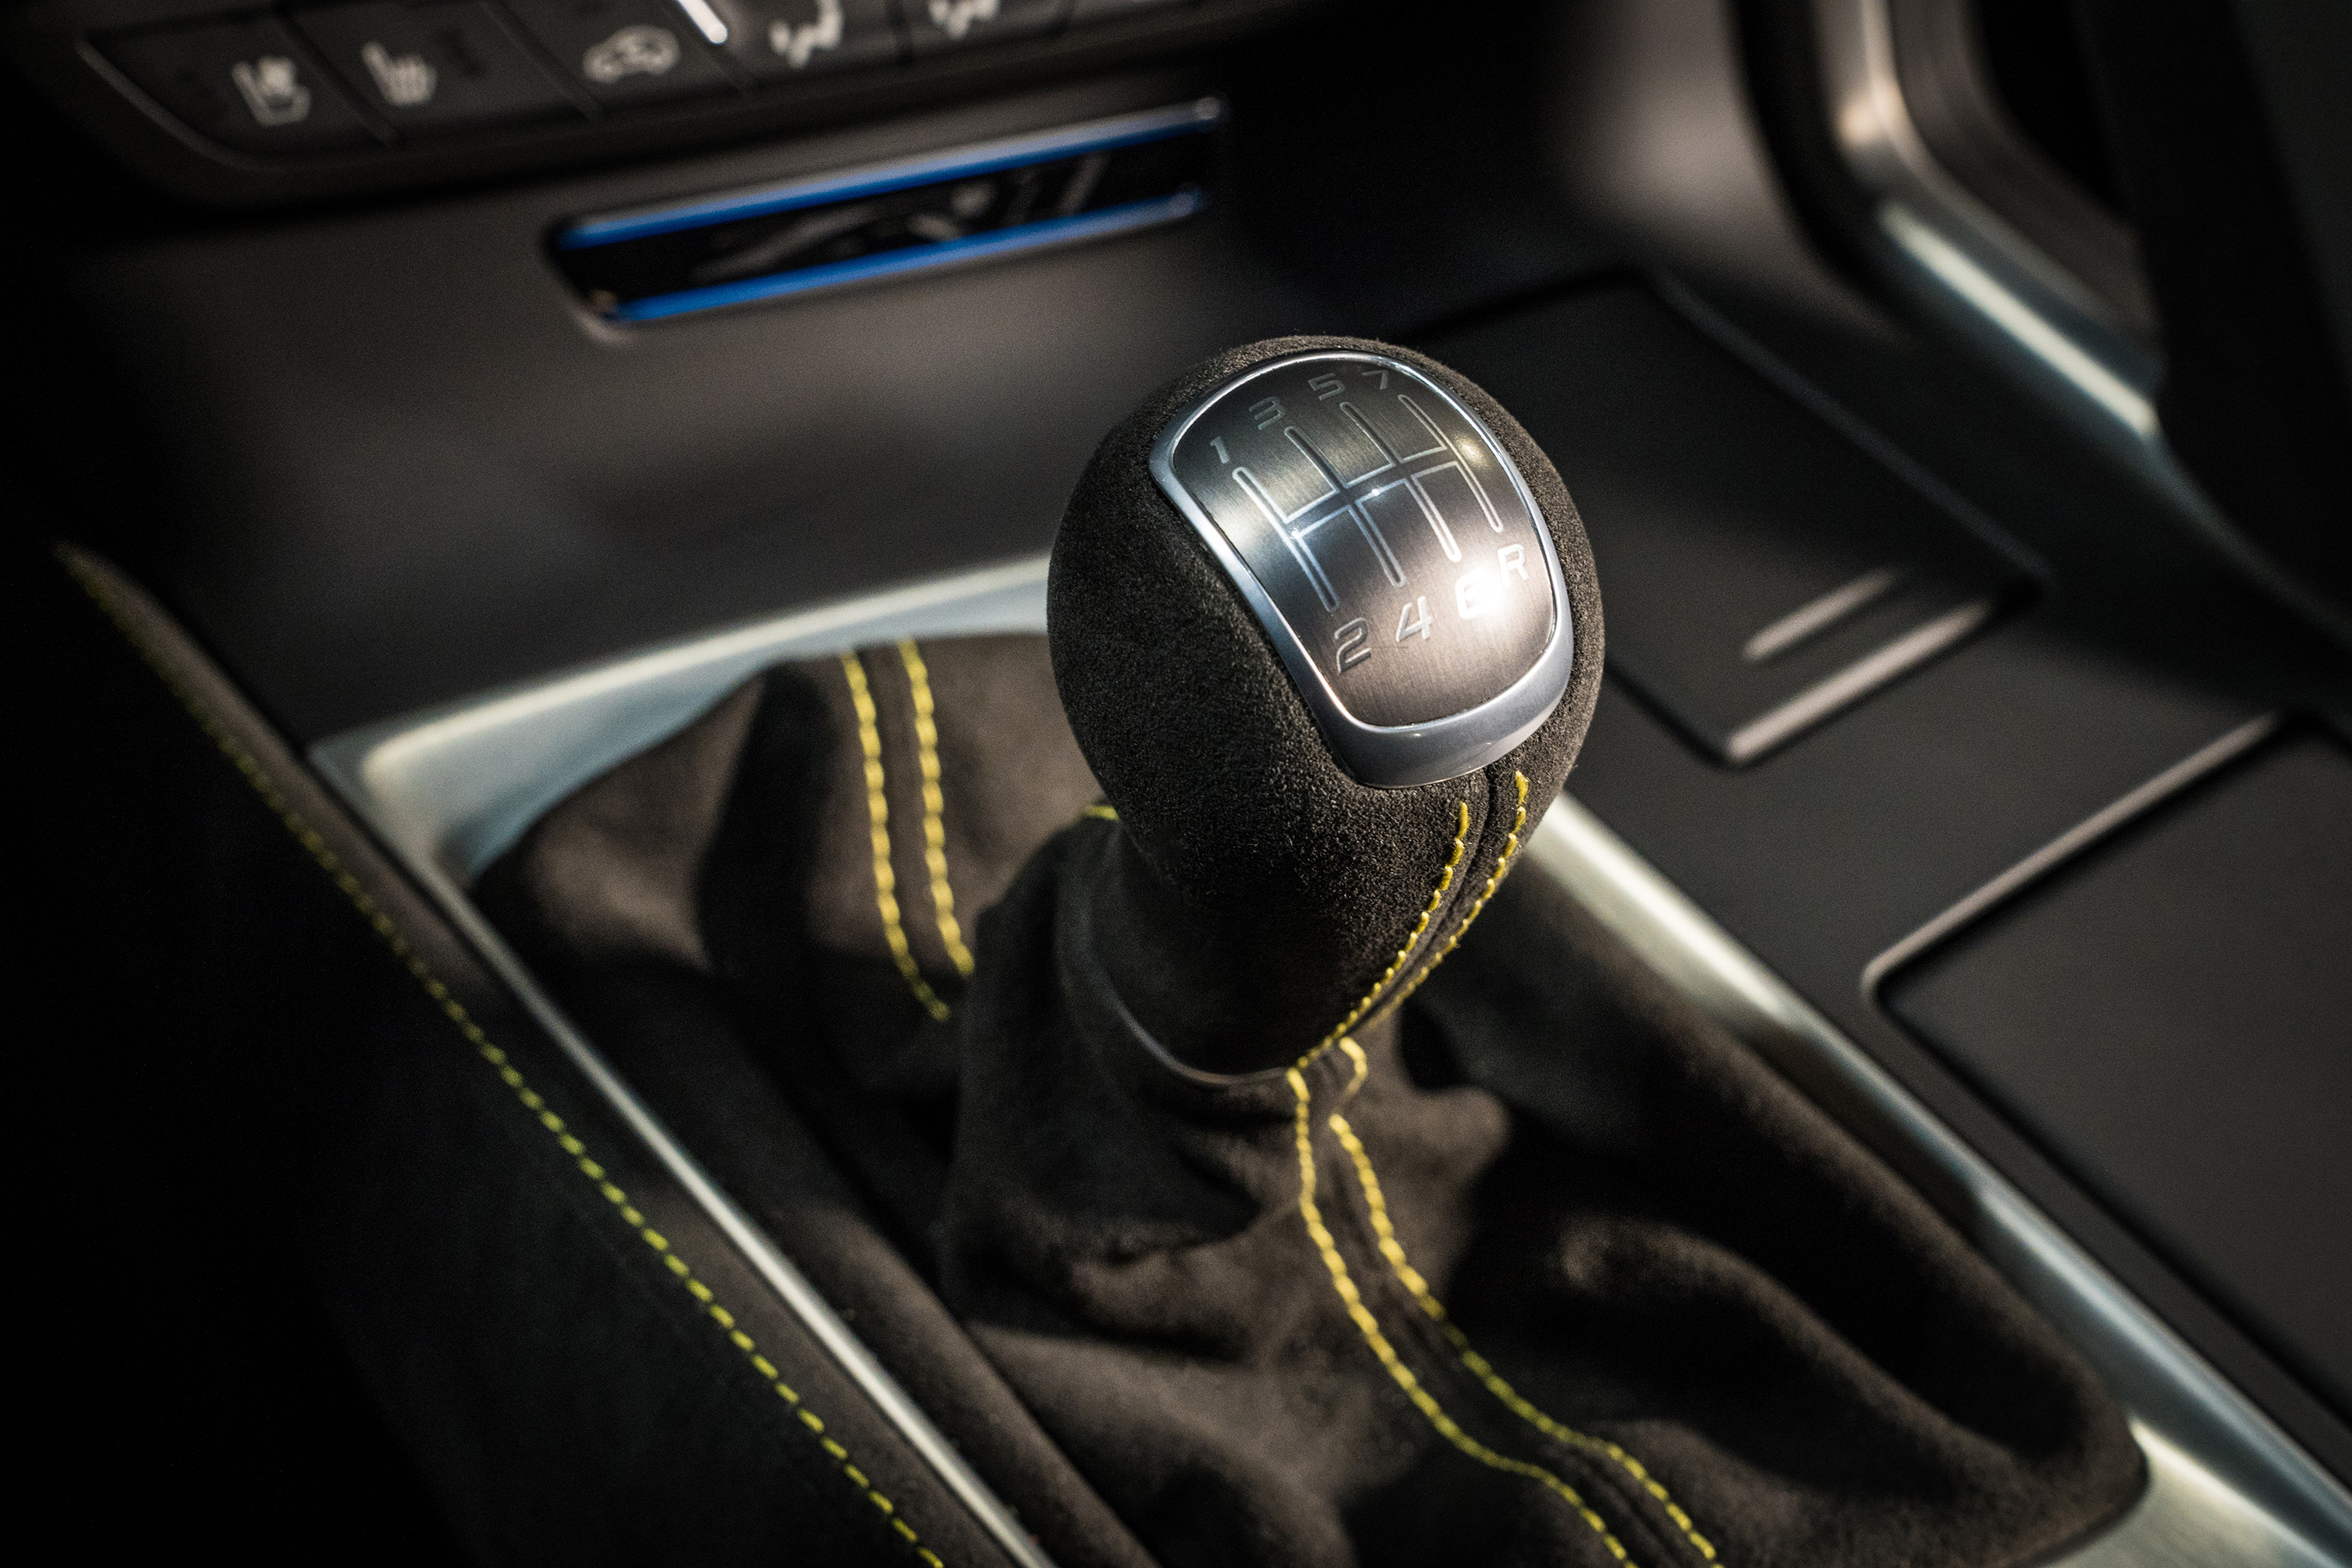 2019 chevrolet corvette zr1 7 speed manual transmission shift lever